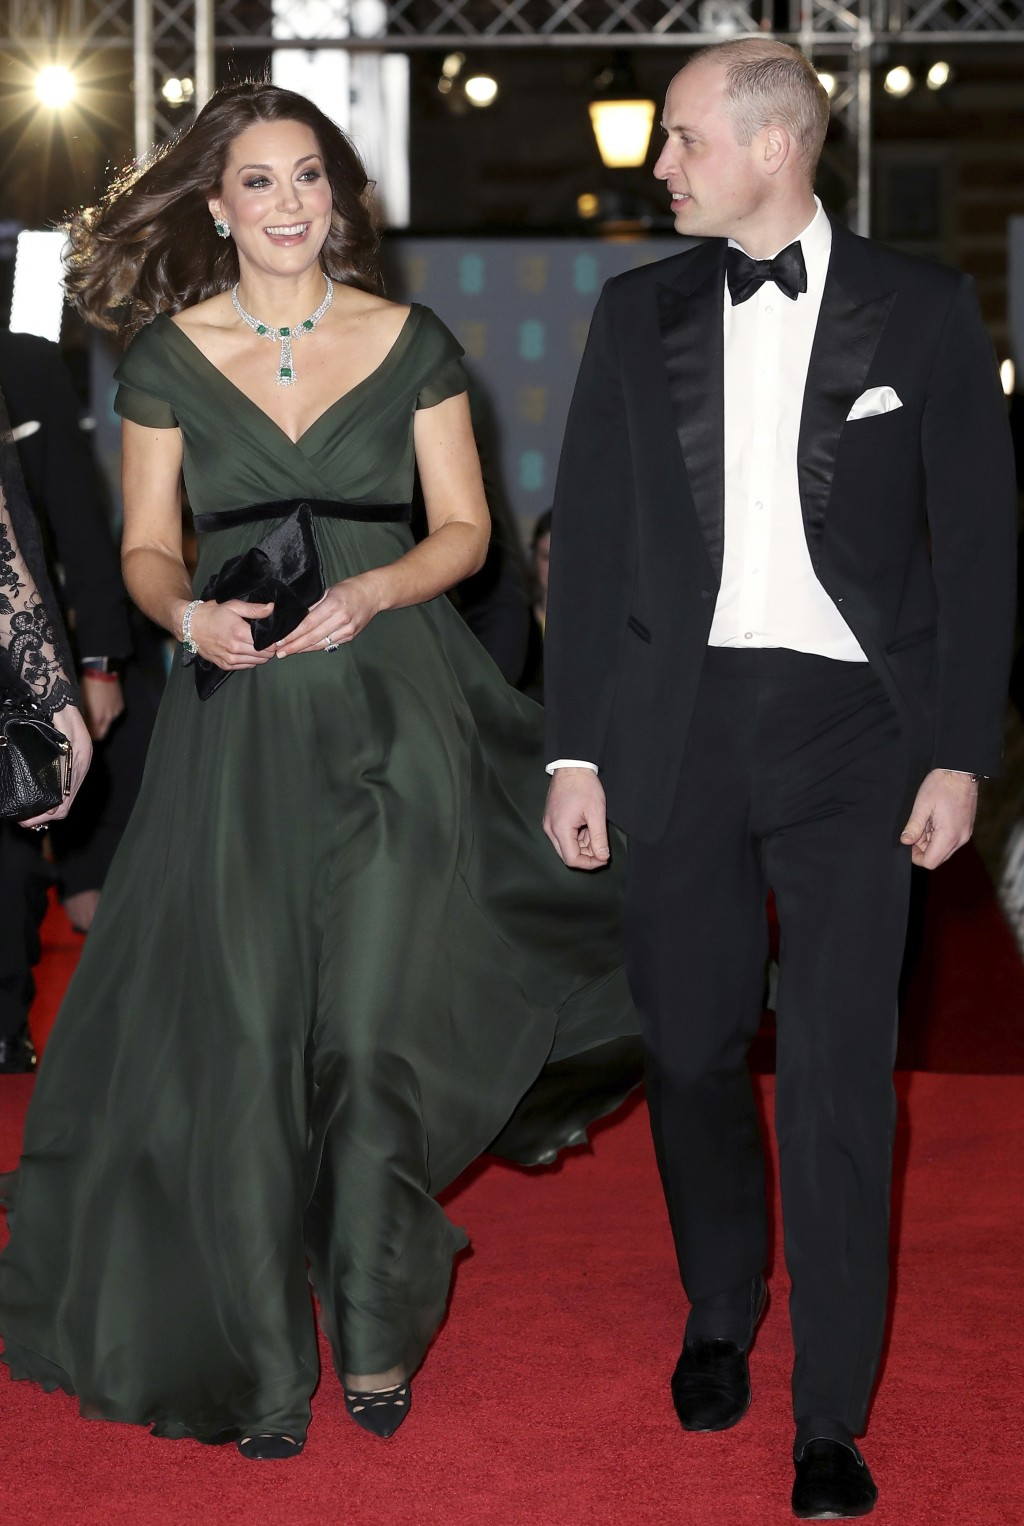 Britain's Prince William and Kate, Duchess of Cambridge arrive for the BAFTA 2018 Awards in London, Sunday, Feb. 18, 2018. (Chris Jackson/Pool via AP)